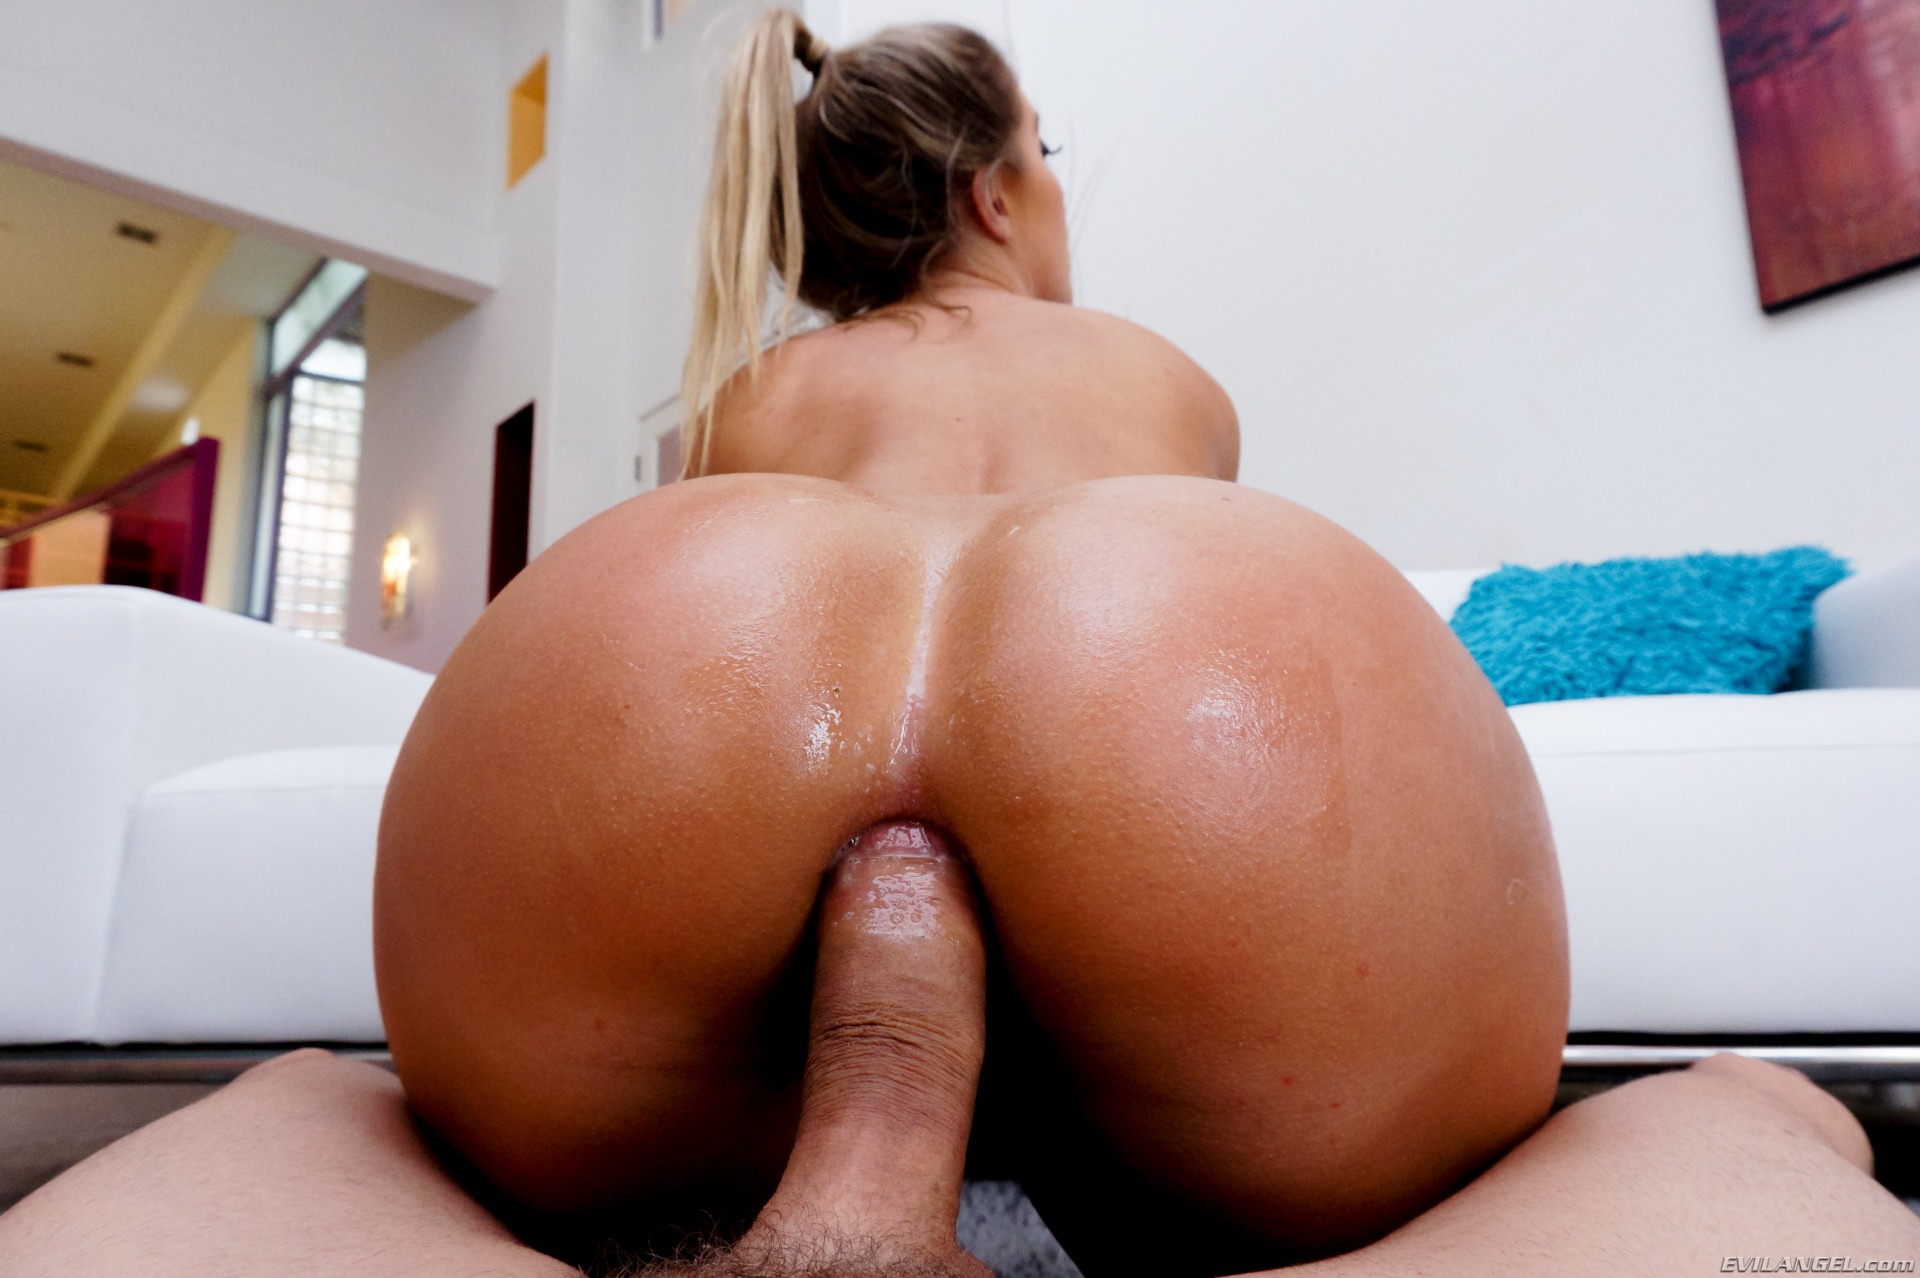 Blonde Babe Candice Dare Is Playing With Her Butt Cheeks Spreading Them Apart